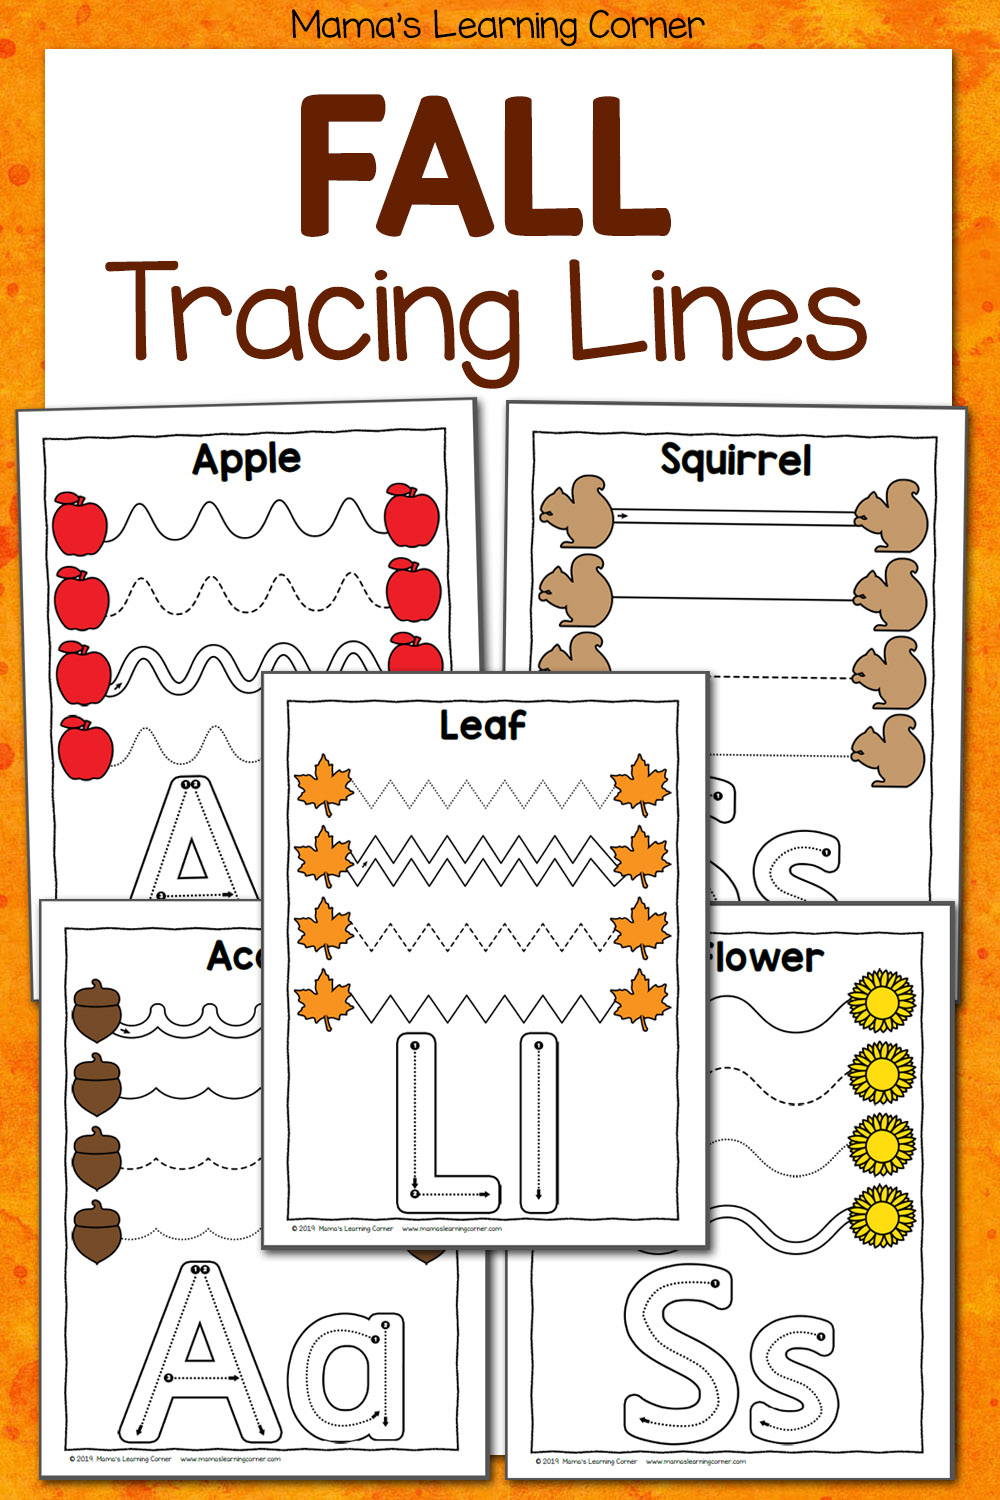 Fall Tracing Worksheets for Preschool - Mamas Learning Corner